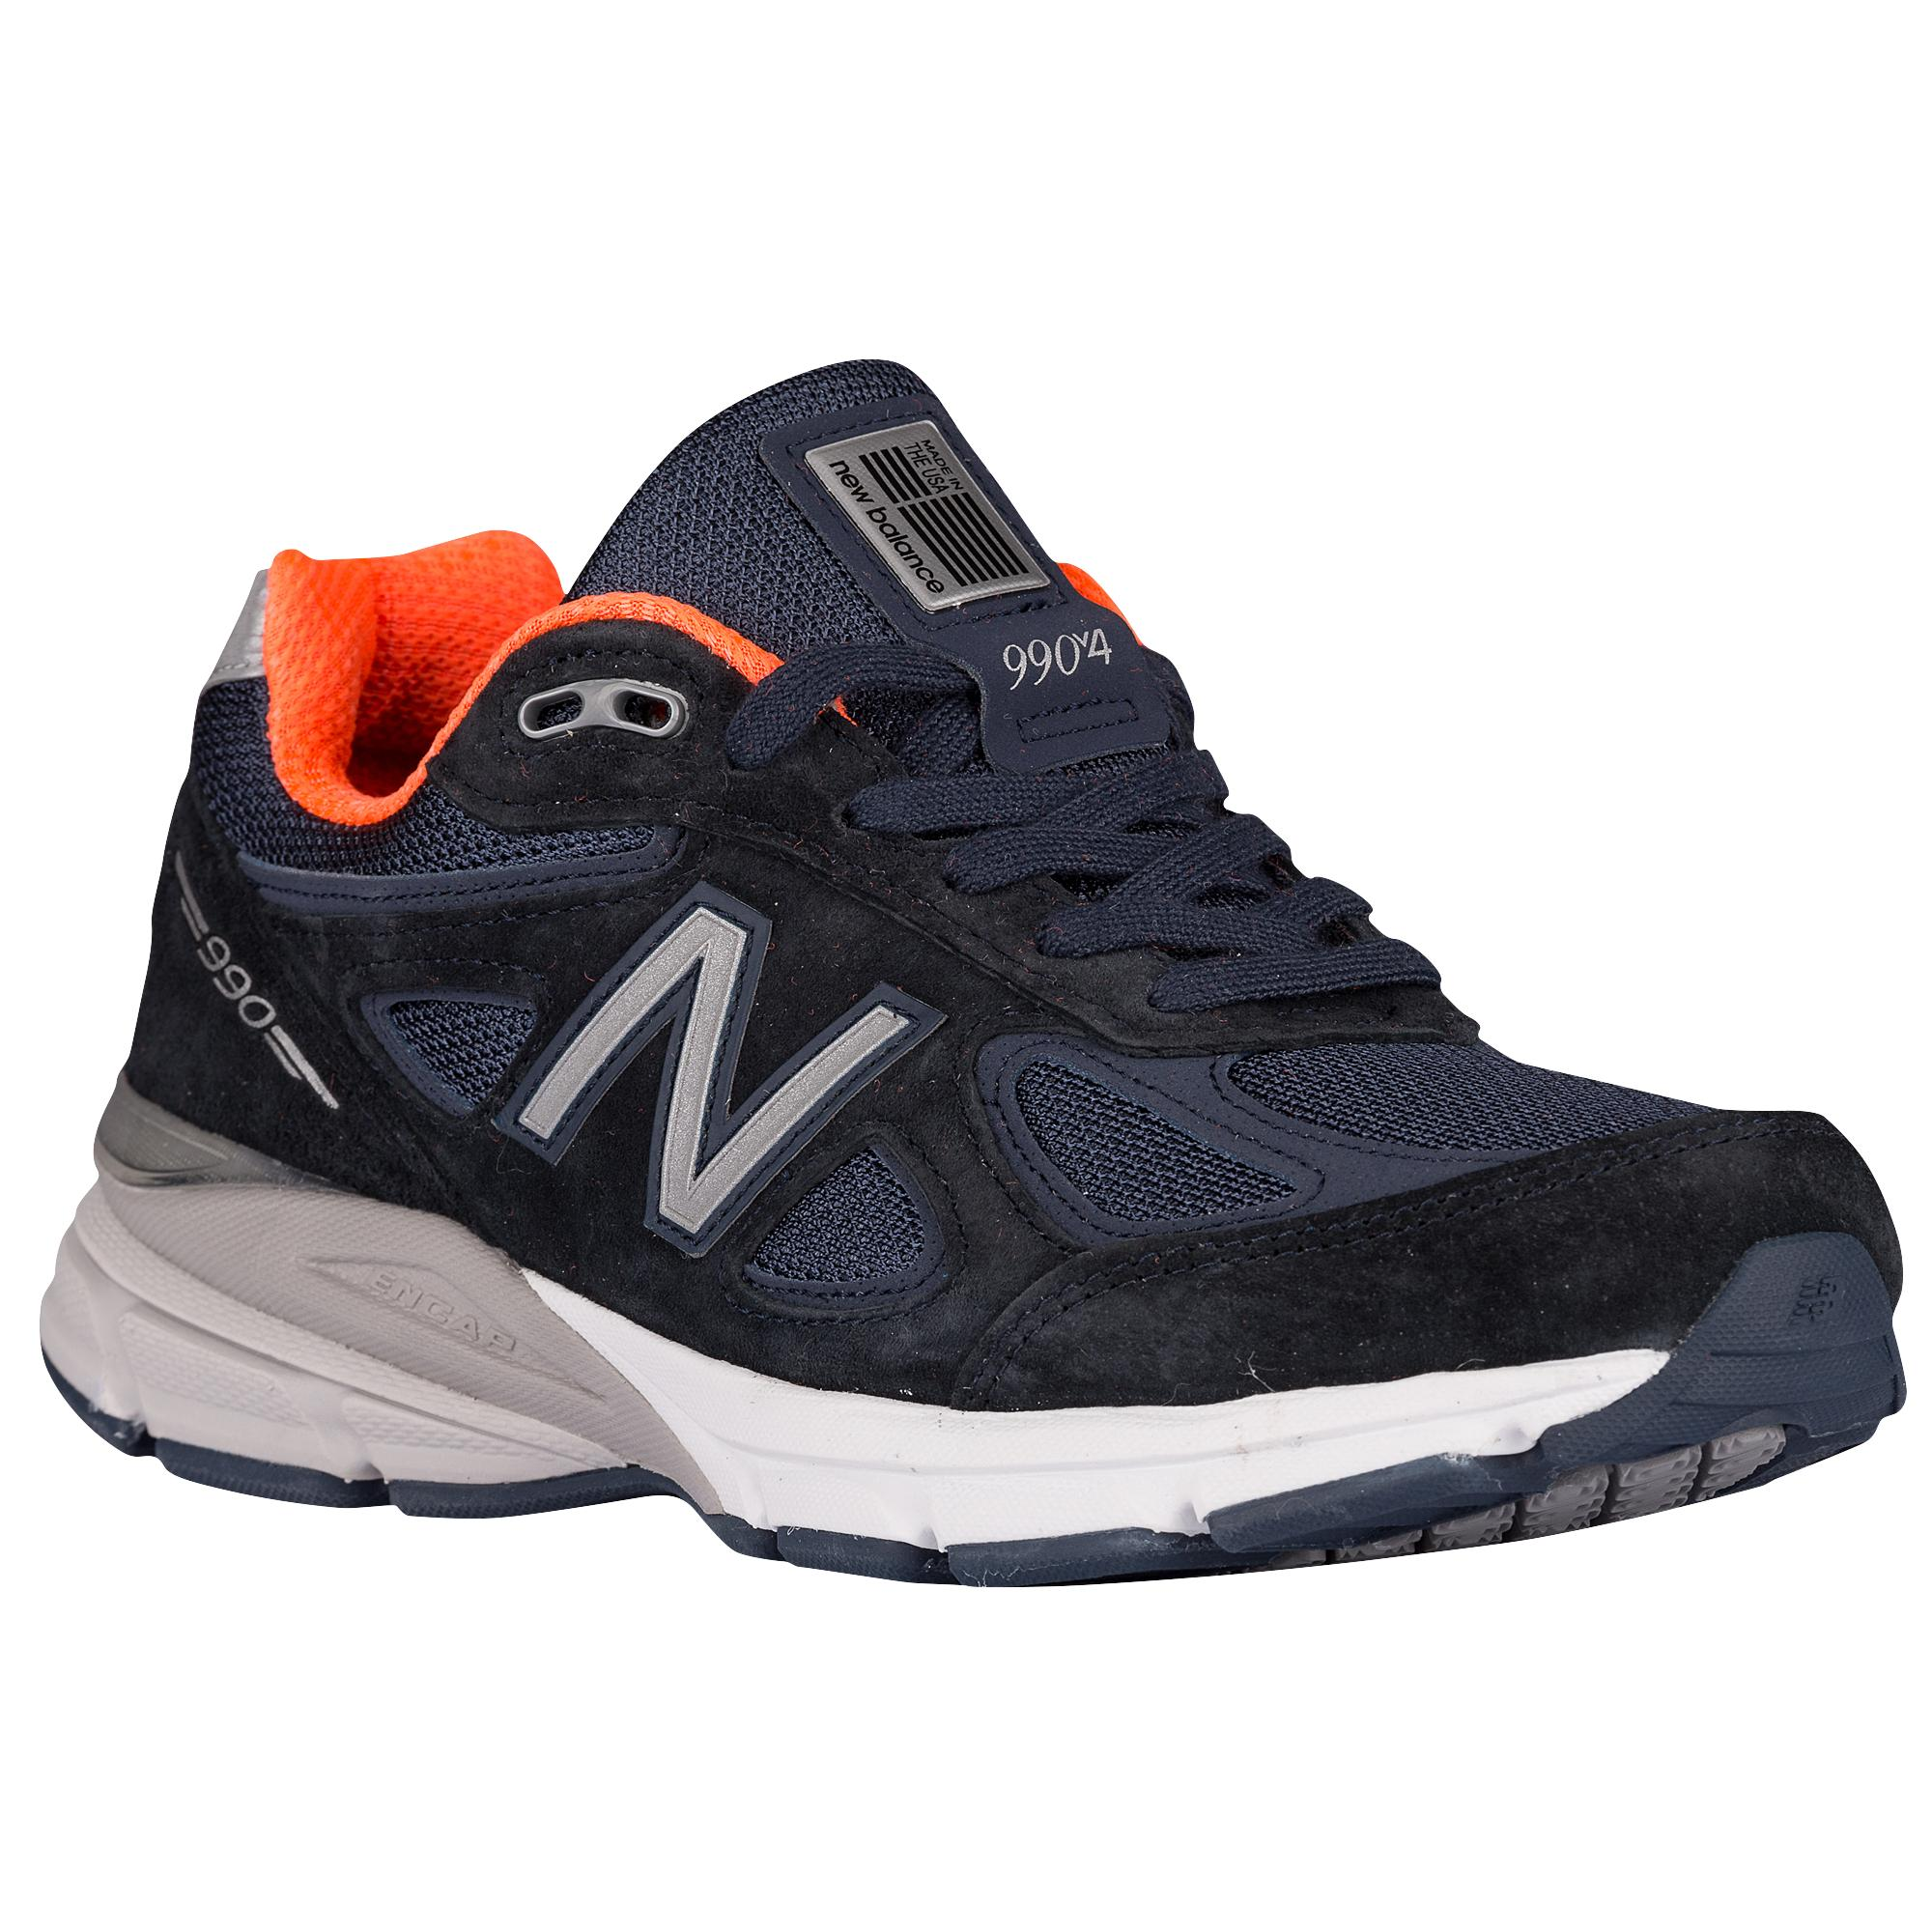 quality design 463bc 8ed66 Women's Blue 990 Running Shoes